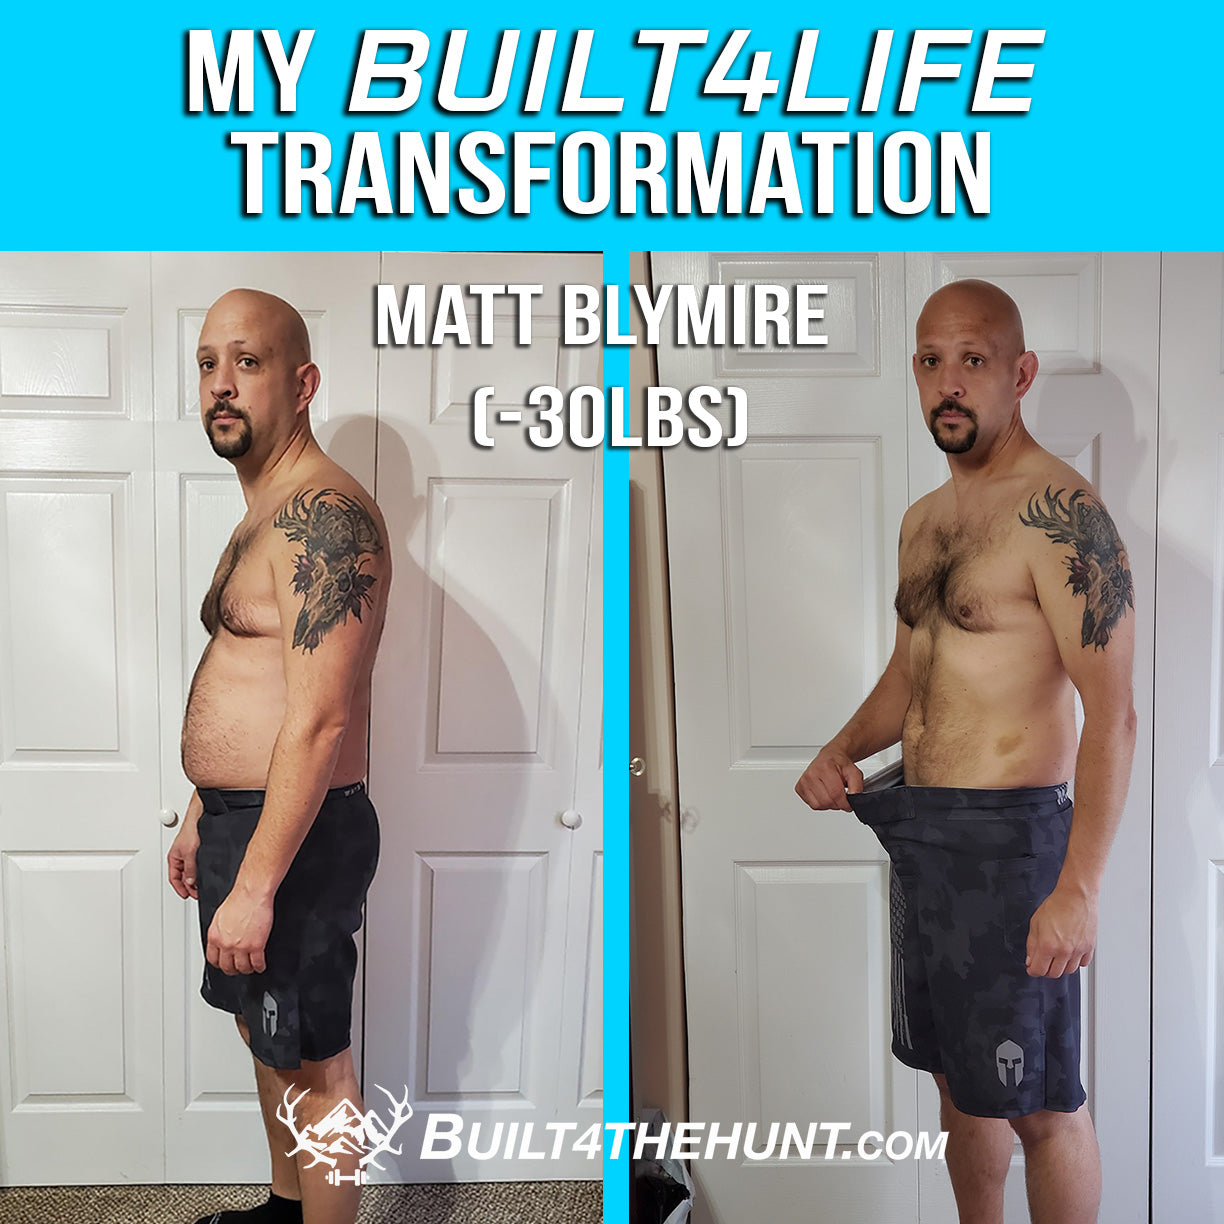 What Is Your Why? - A Built4TheHunt Transformation